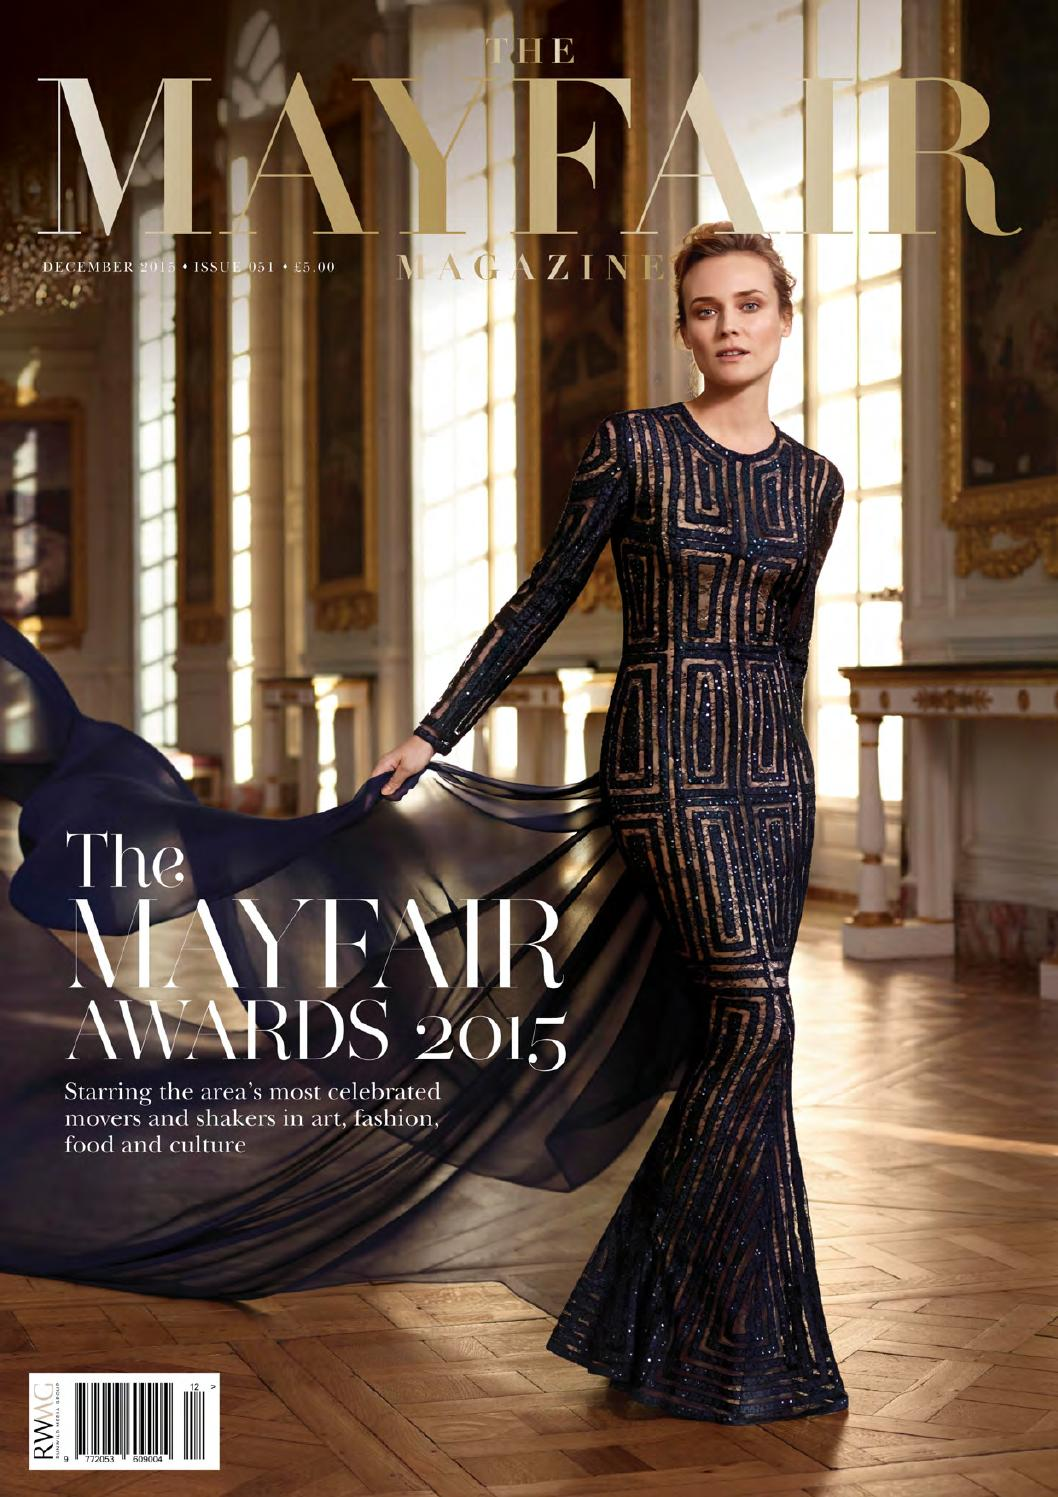 The Mayfair Magazine December 2015 By Runwild Media Group